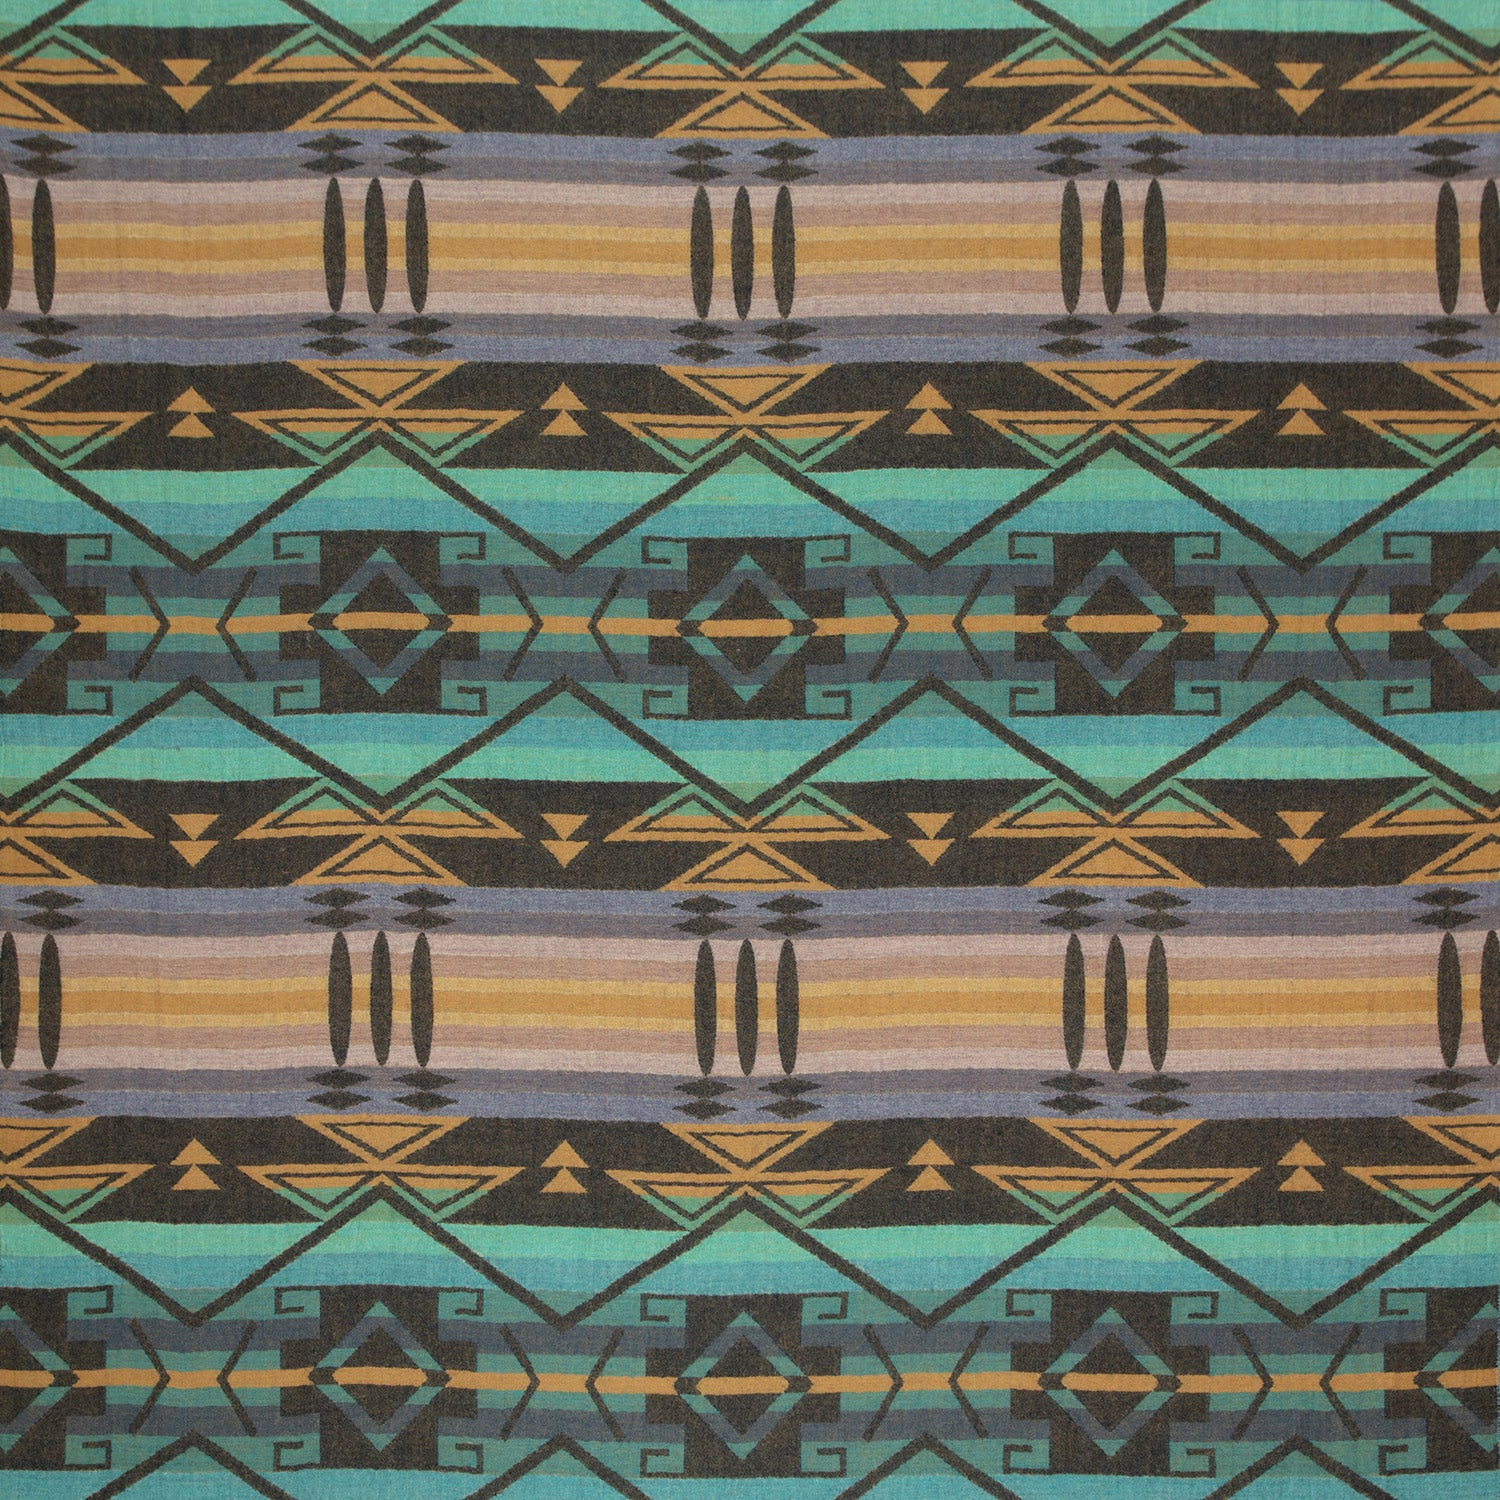 Fabric swatch of a teal and purple coloured wool fabric with a large scale geometric pattern